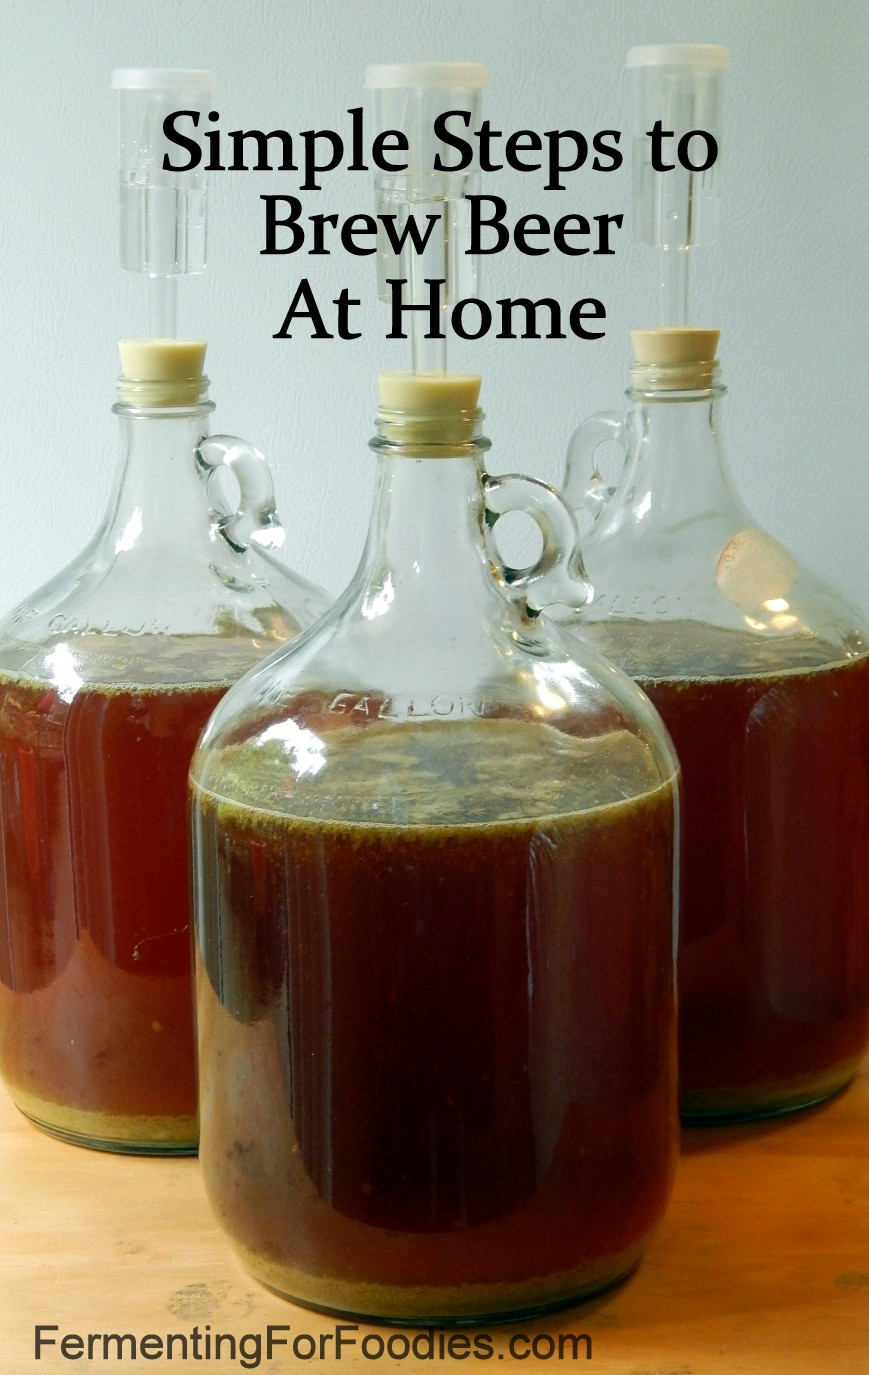 How to brew beer at home: Carboys with hops